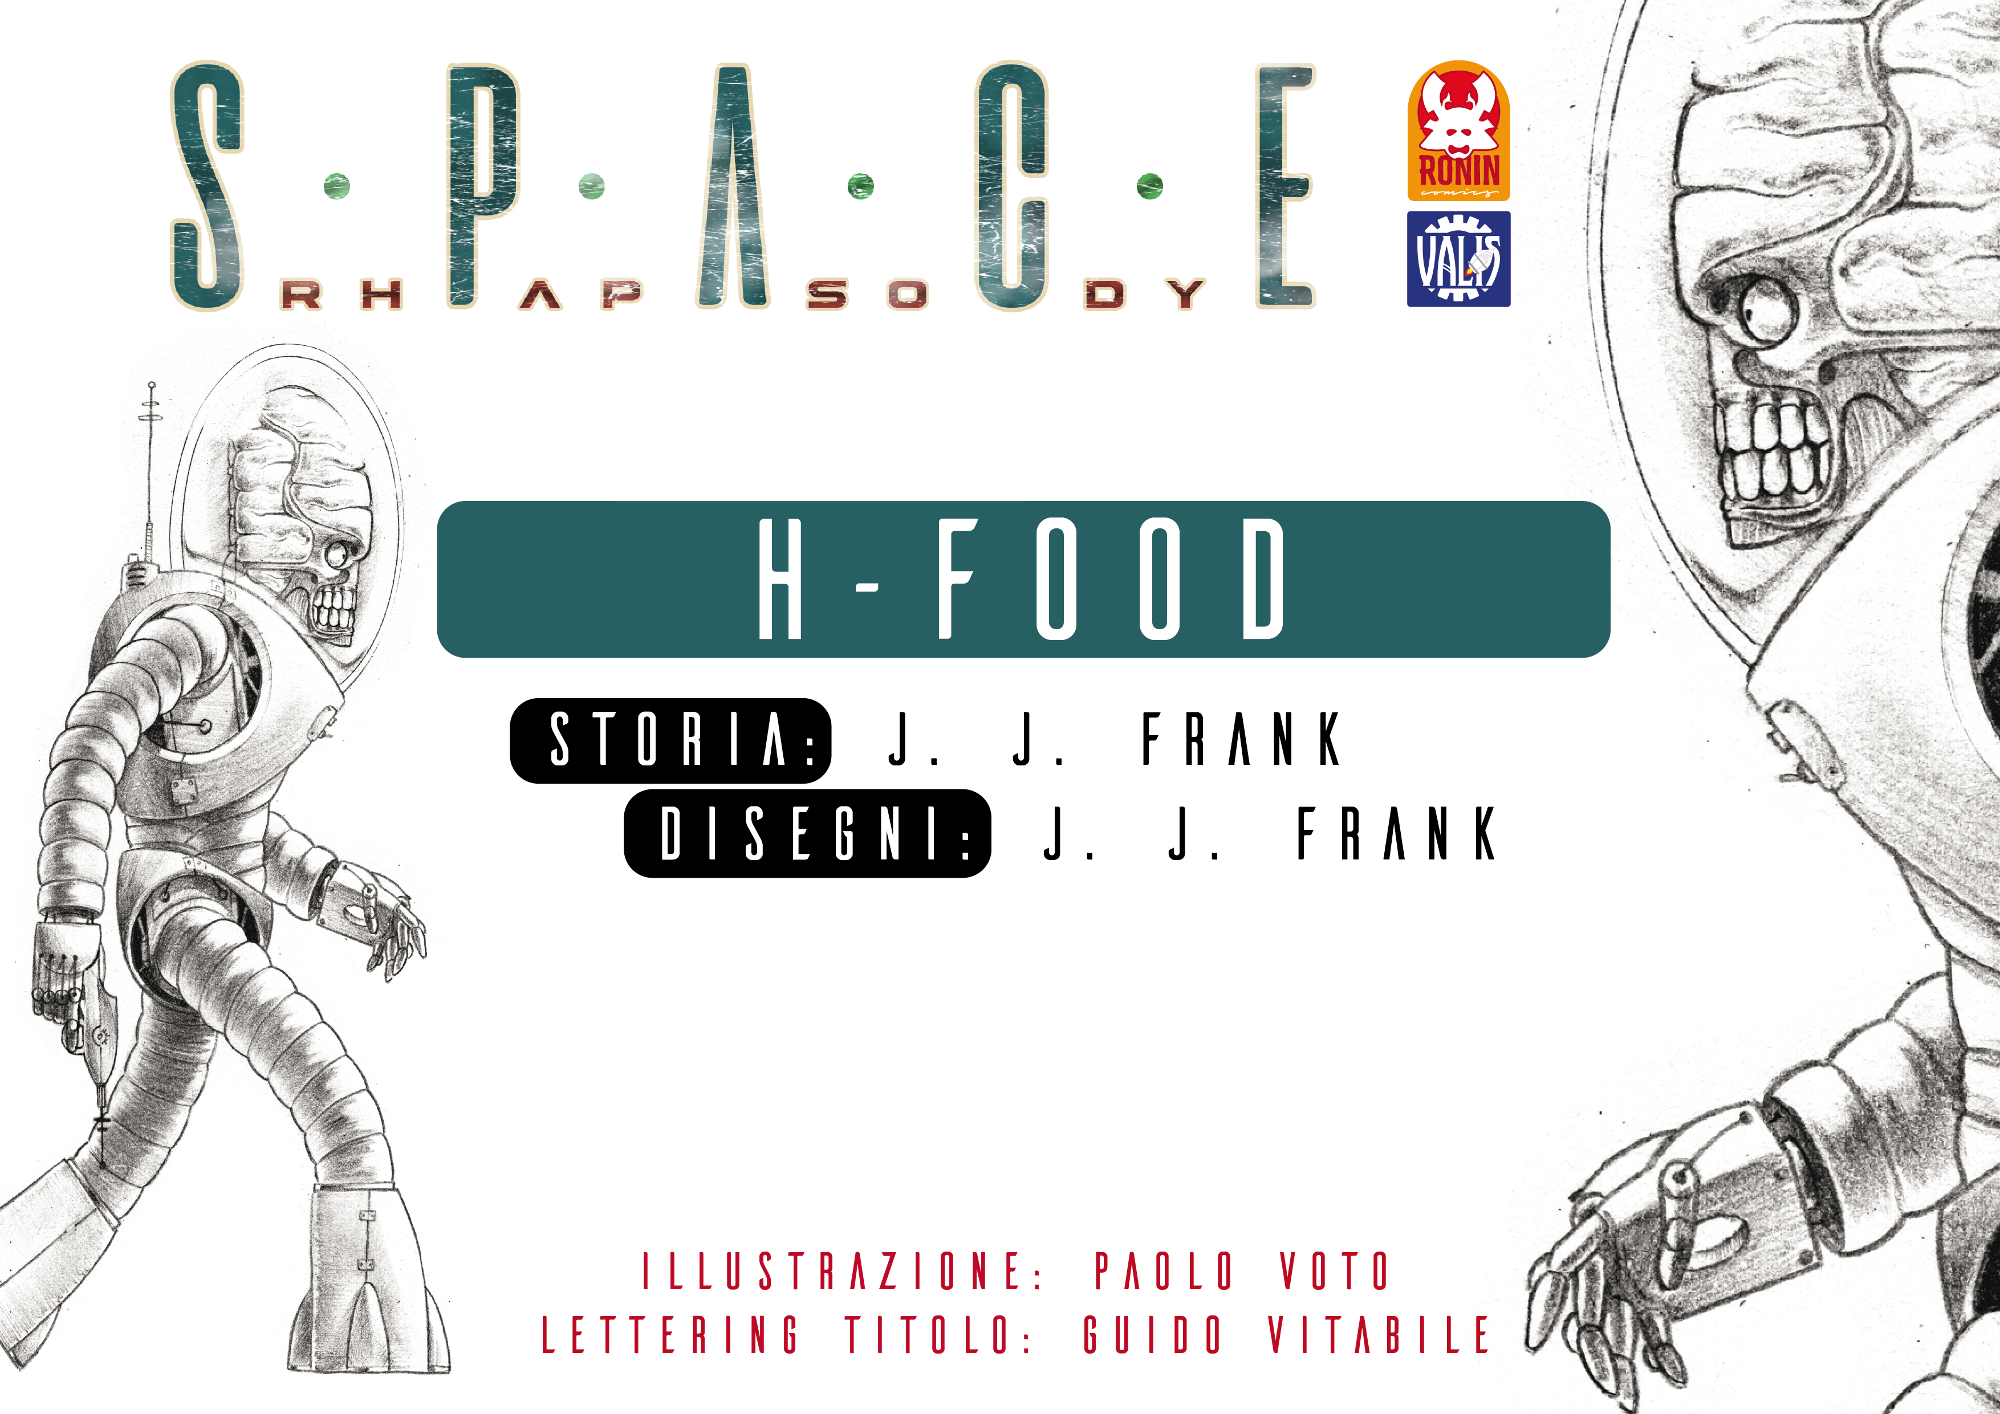 Space Rhapsody #3 - H-Food 3 - fanzine